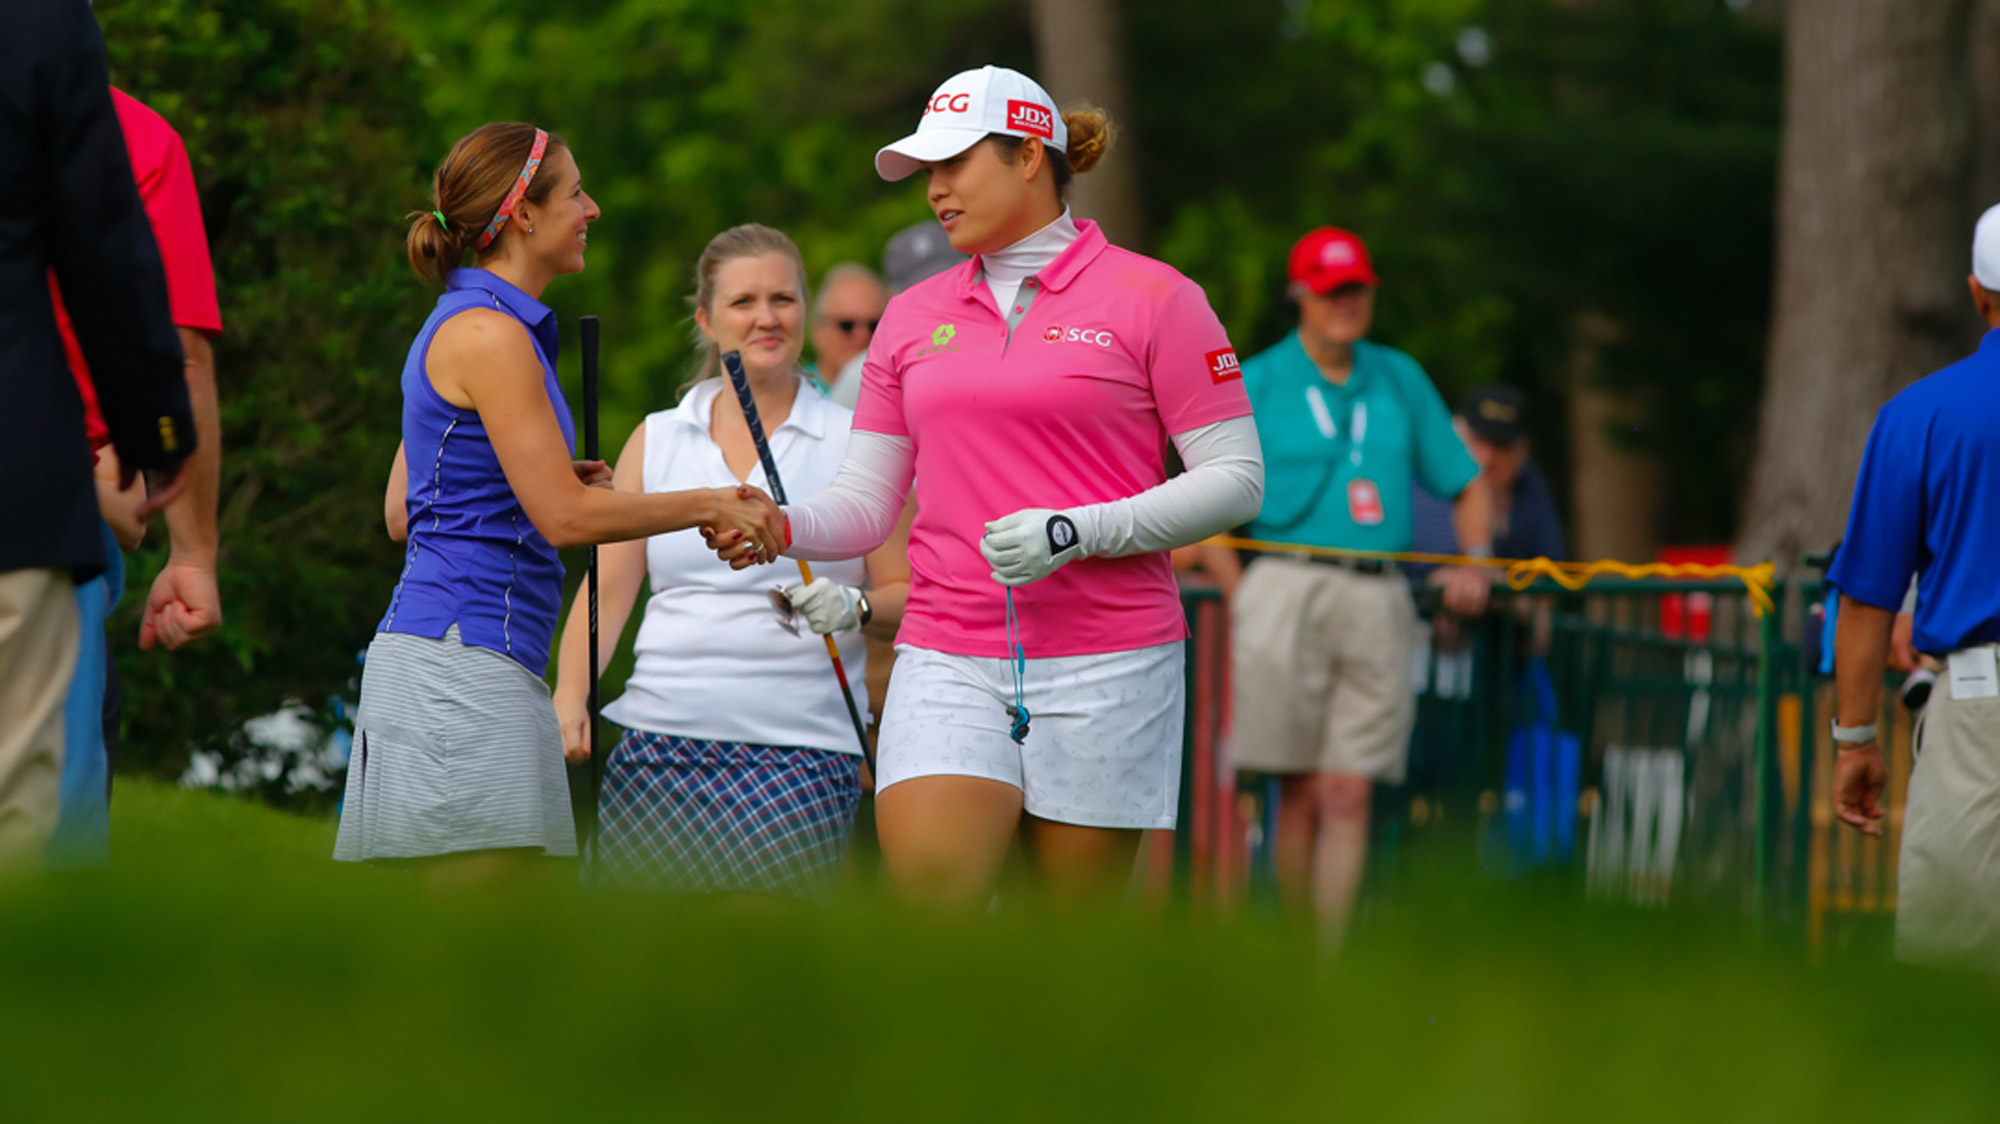 Ariya Jutanugarn Meets Her Pro-Am Partners in Grand Rapids